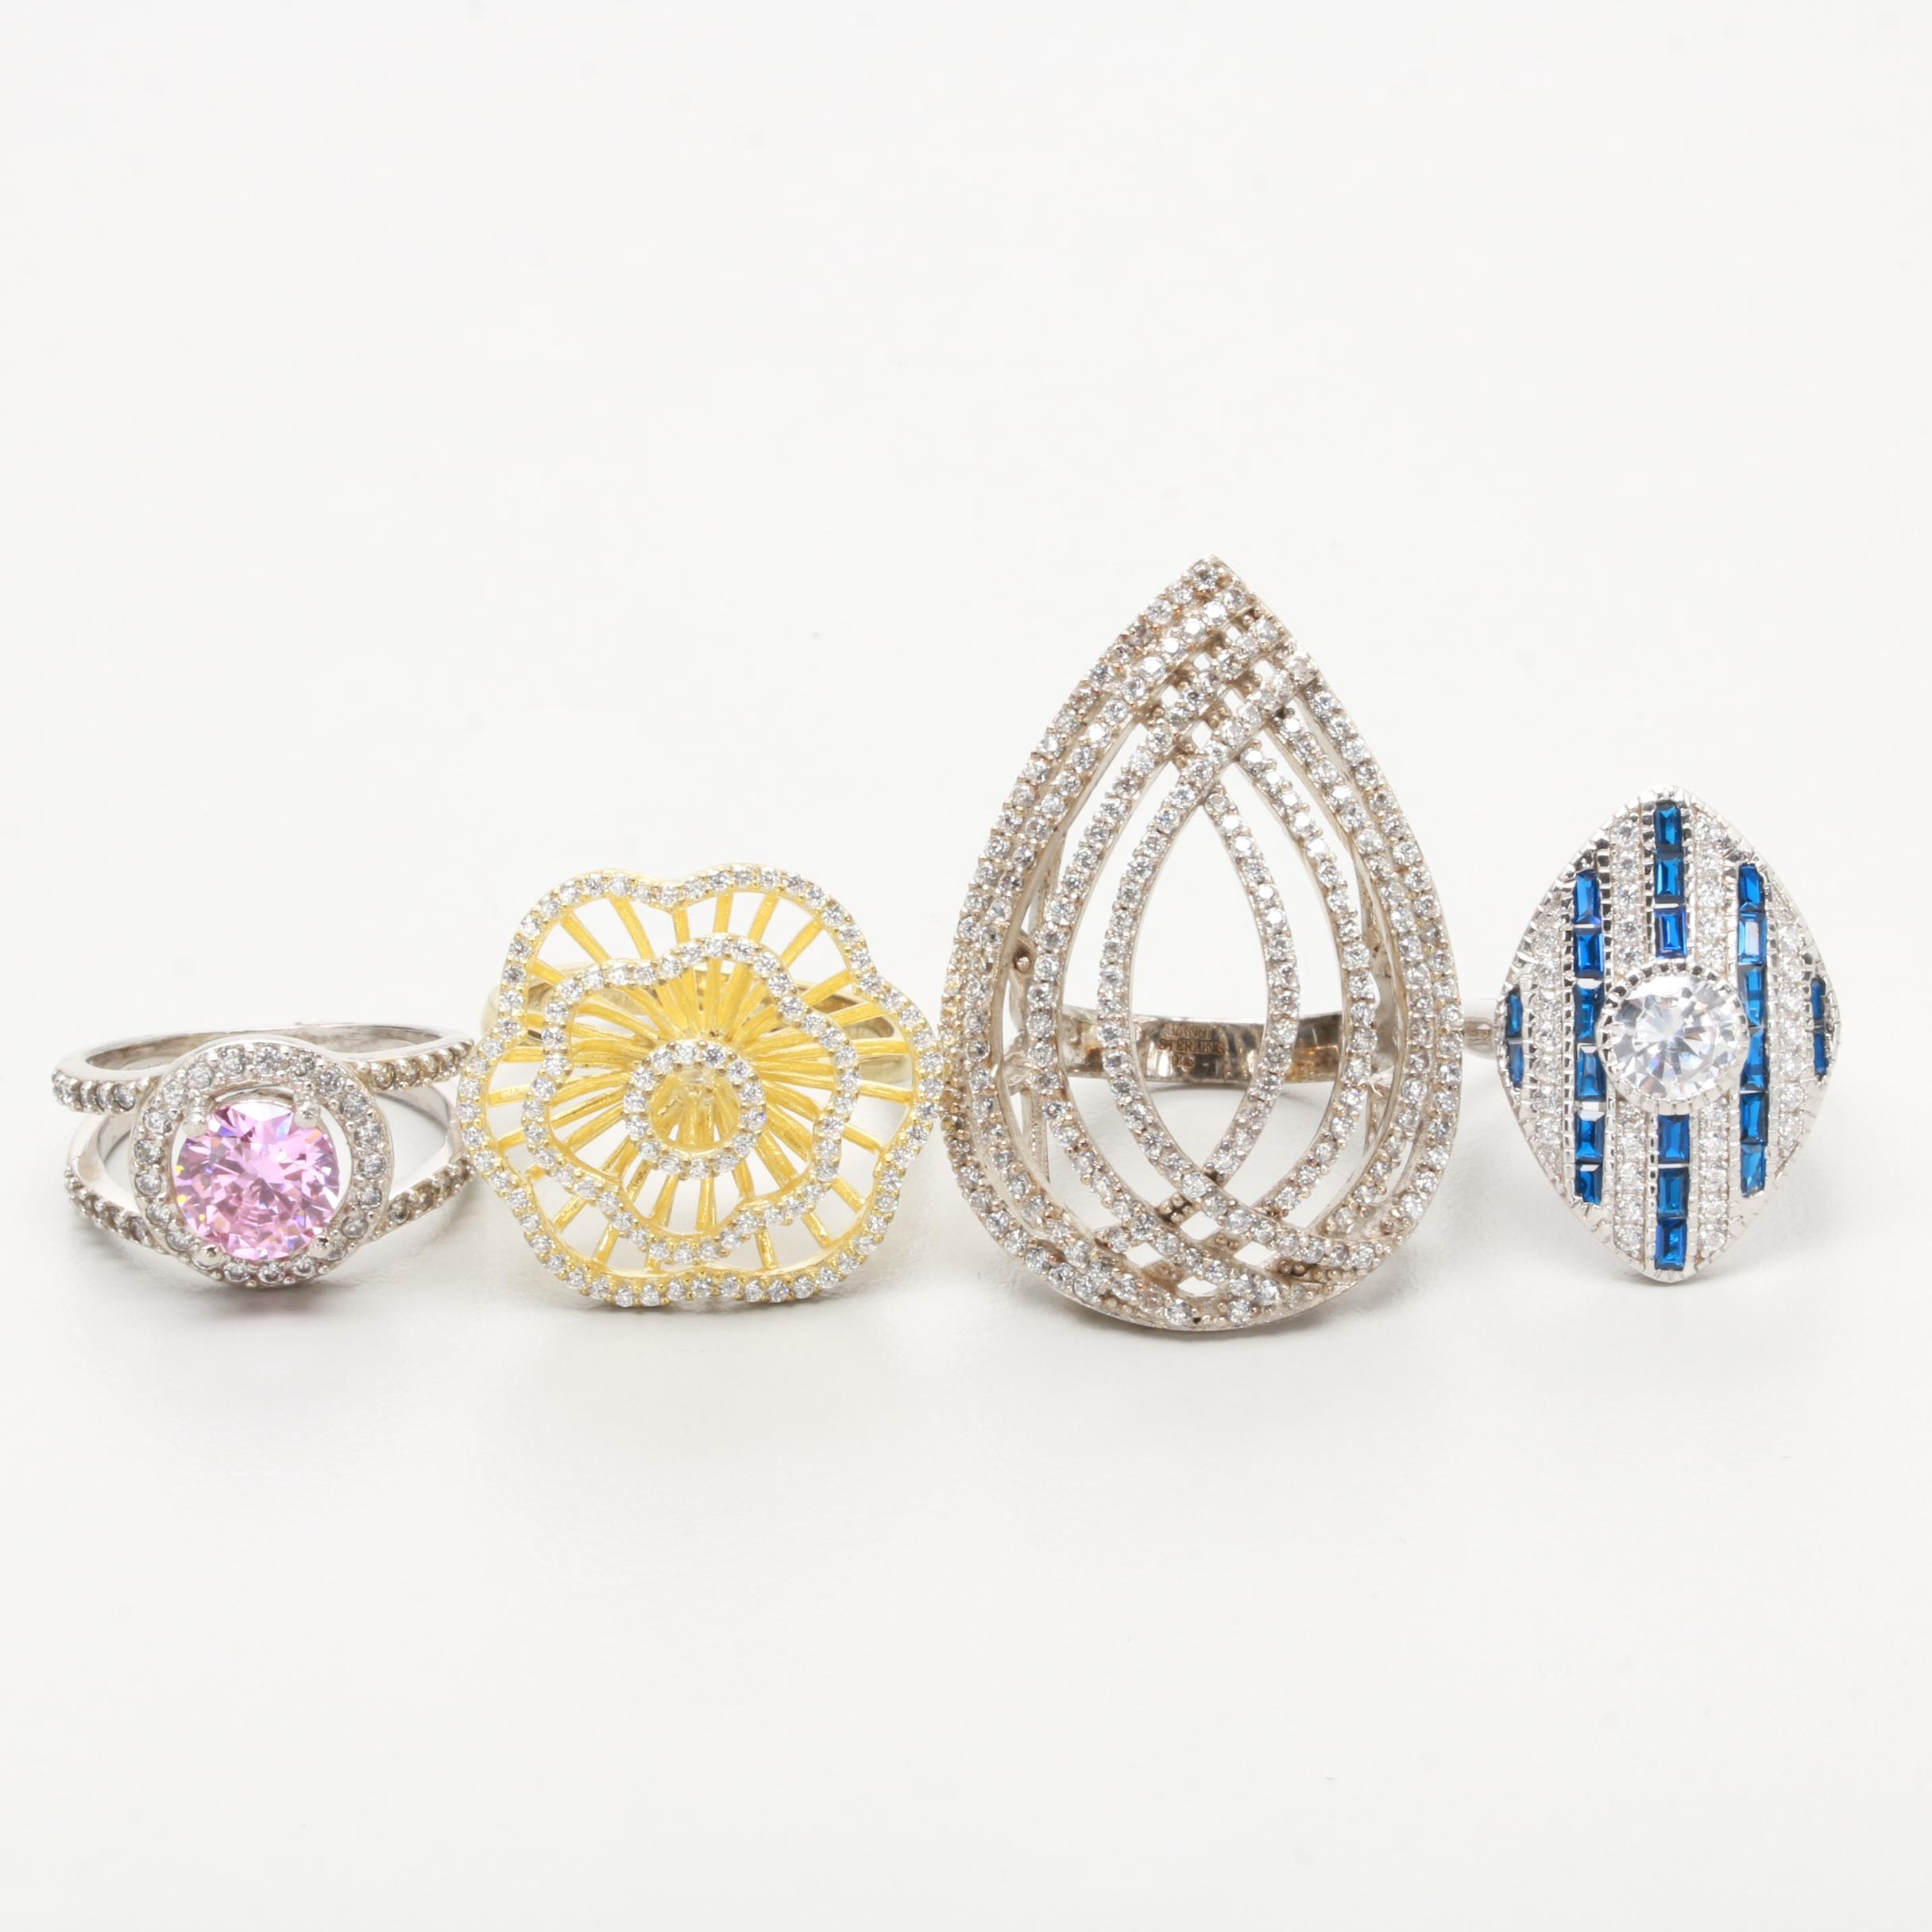 Sterling Silver Synthetic Spinel and Cubic Zirconia Rings